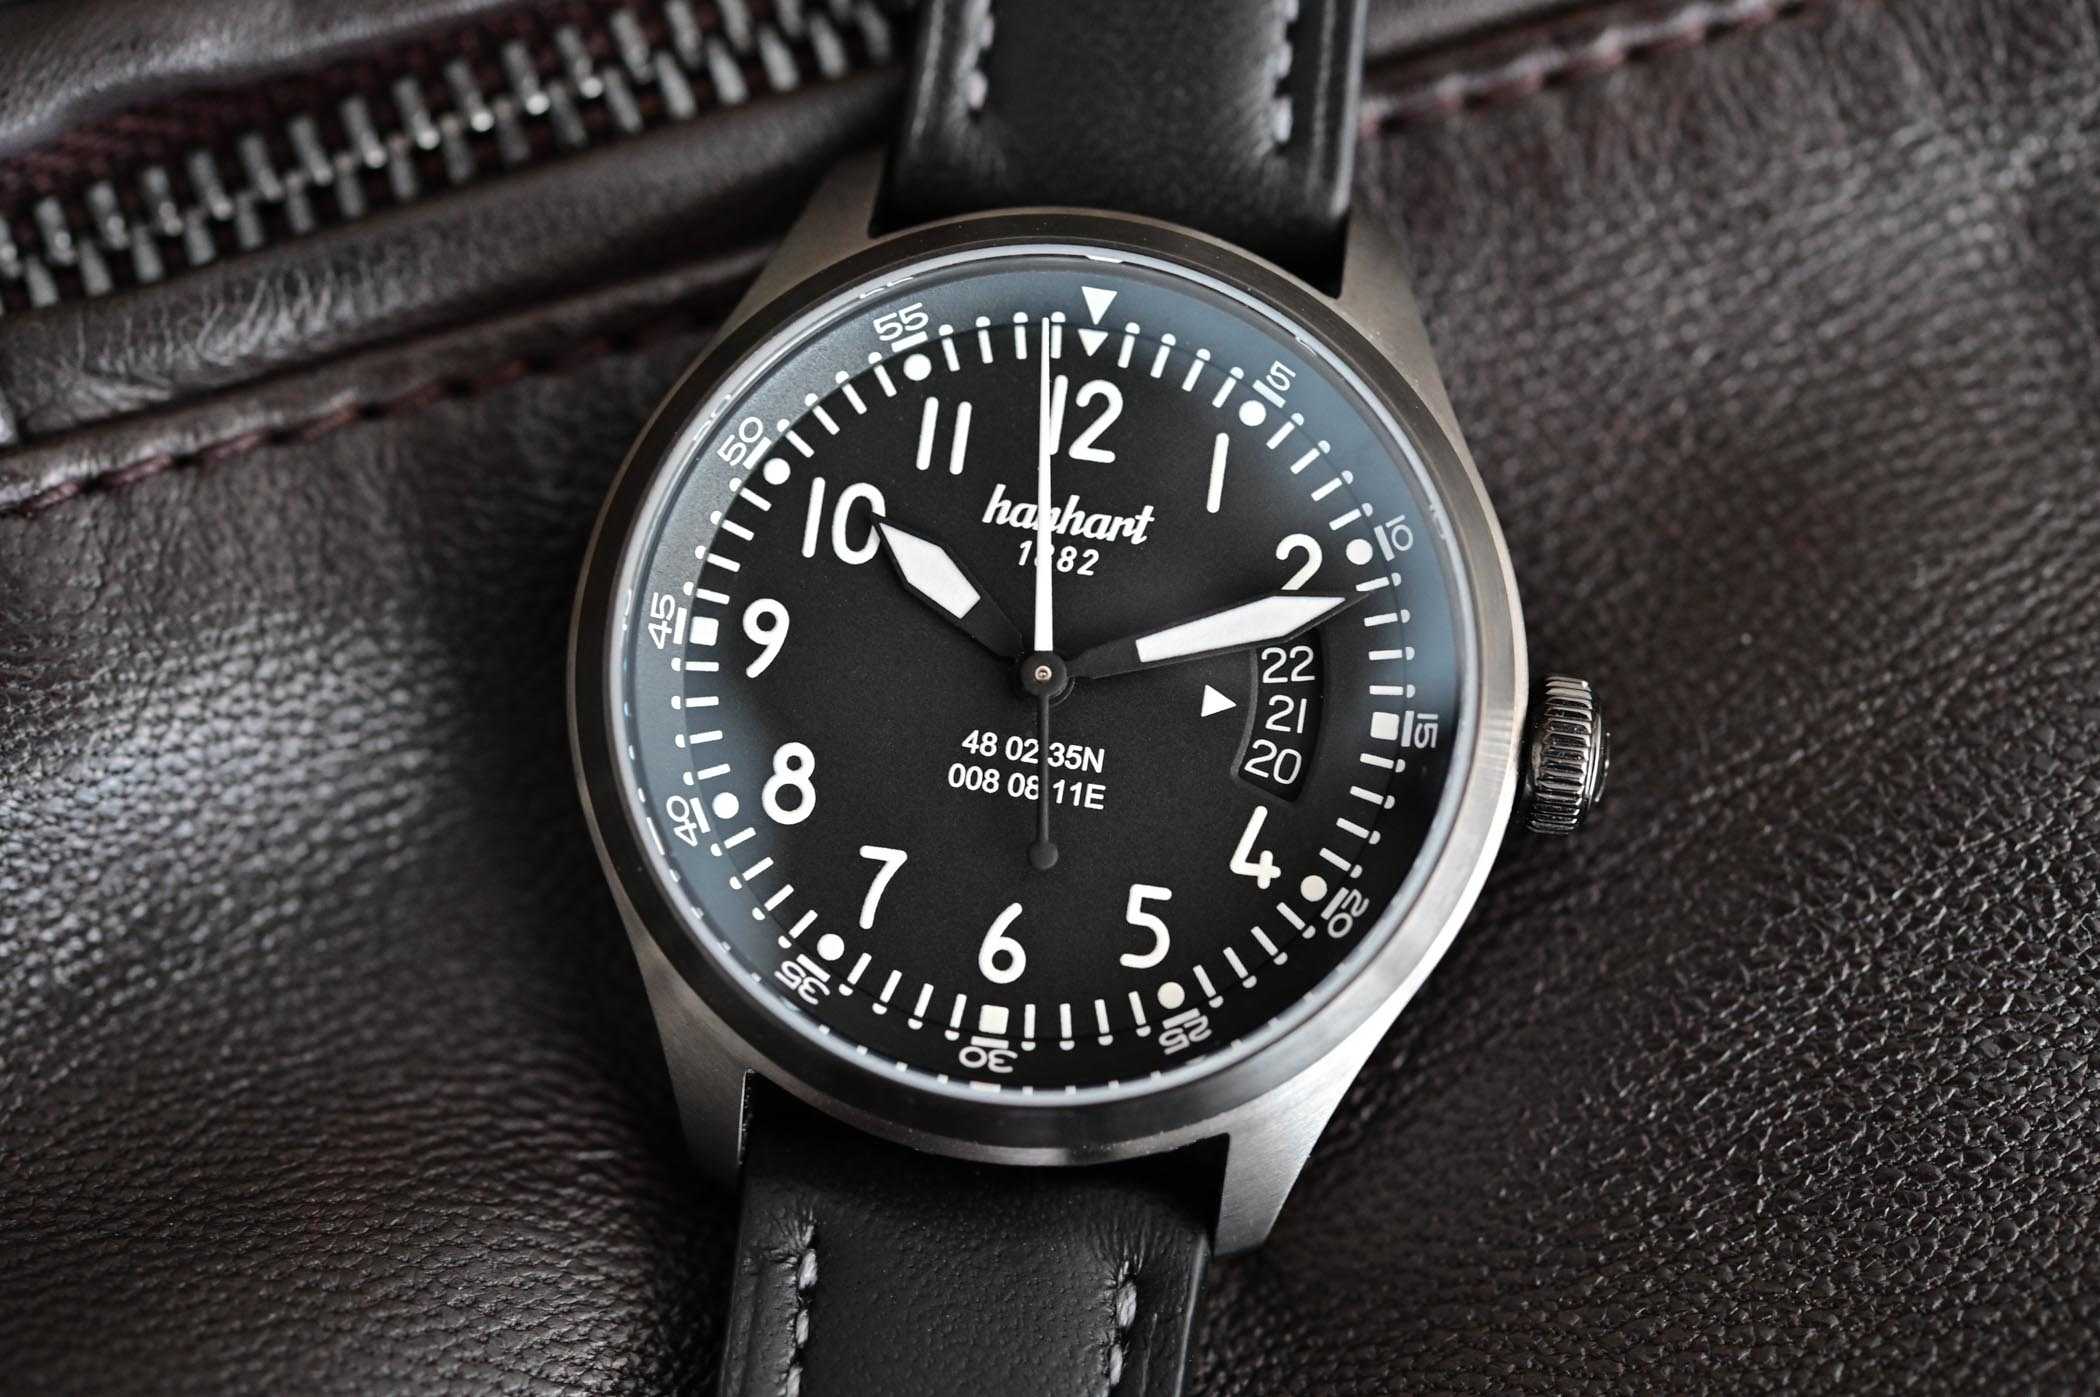 5 Cool Accessible Sports Watches Recently Launched - Monochrome Watches